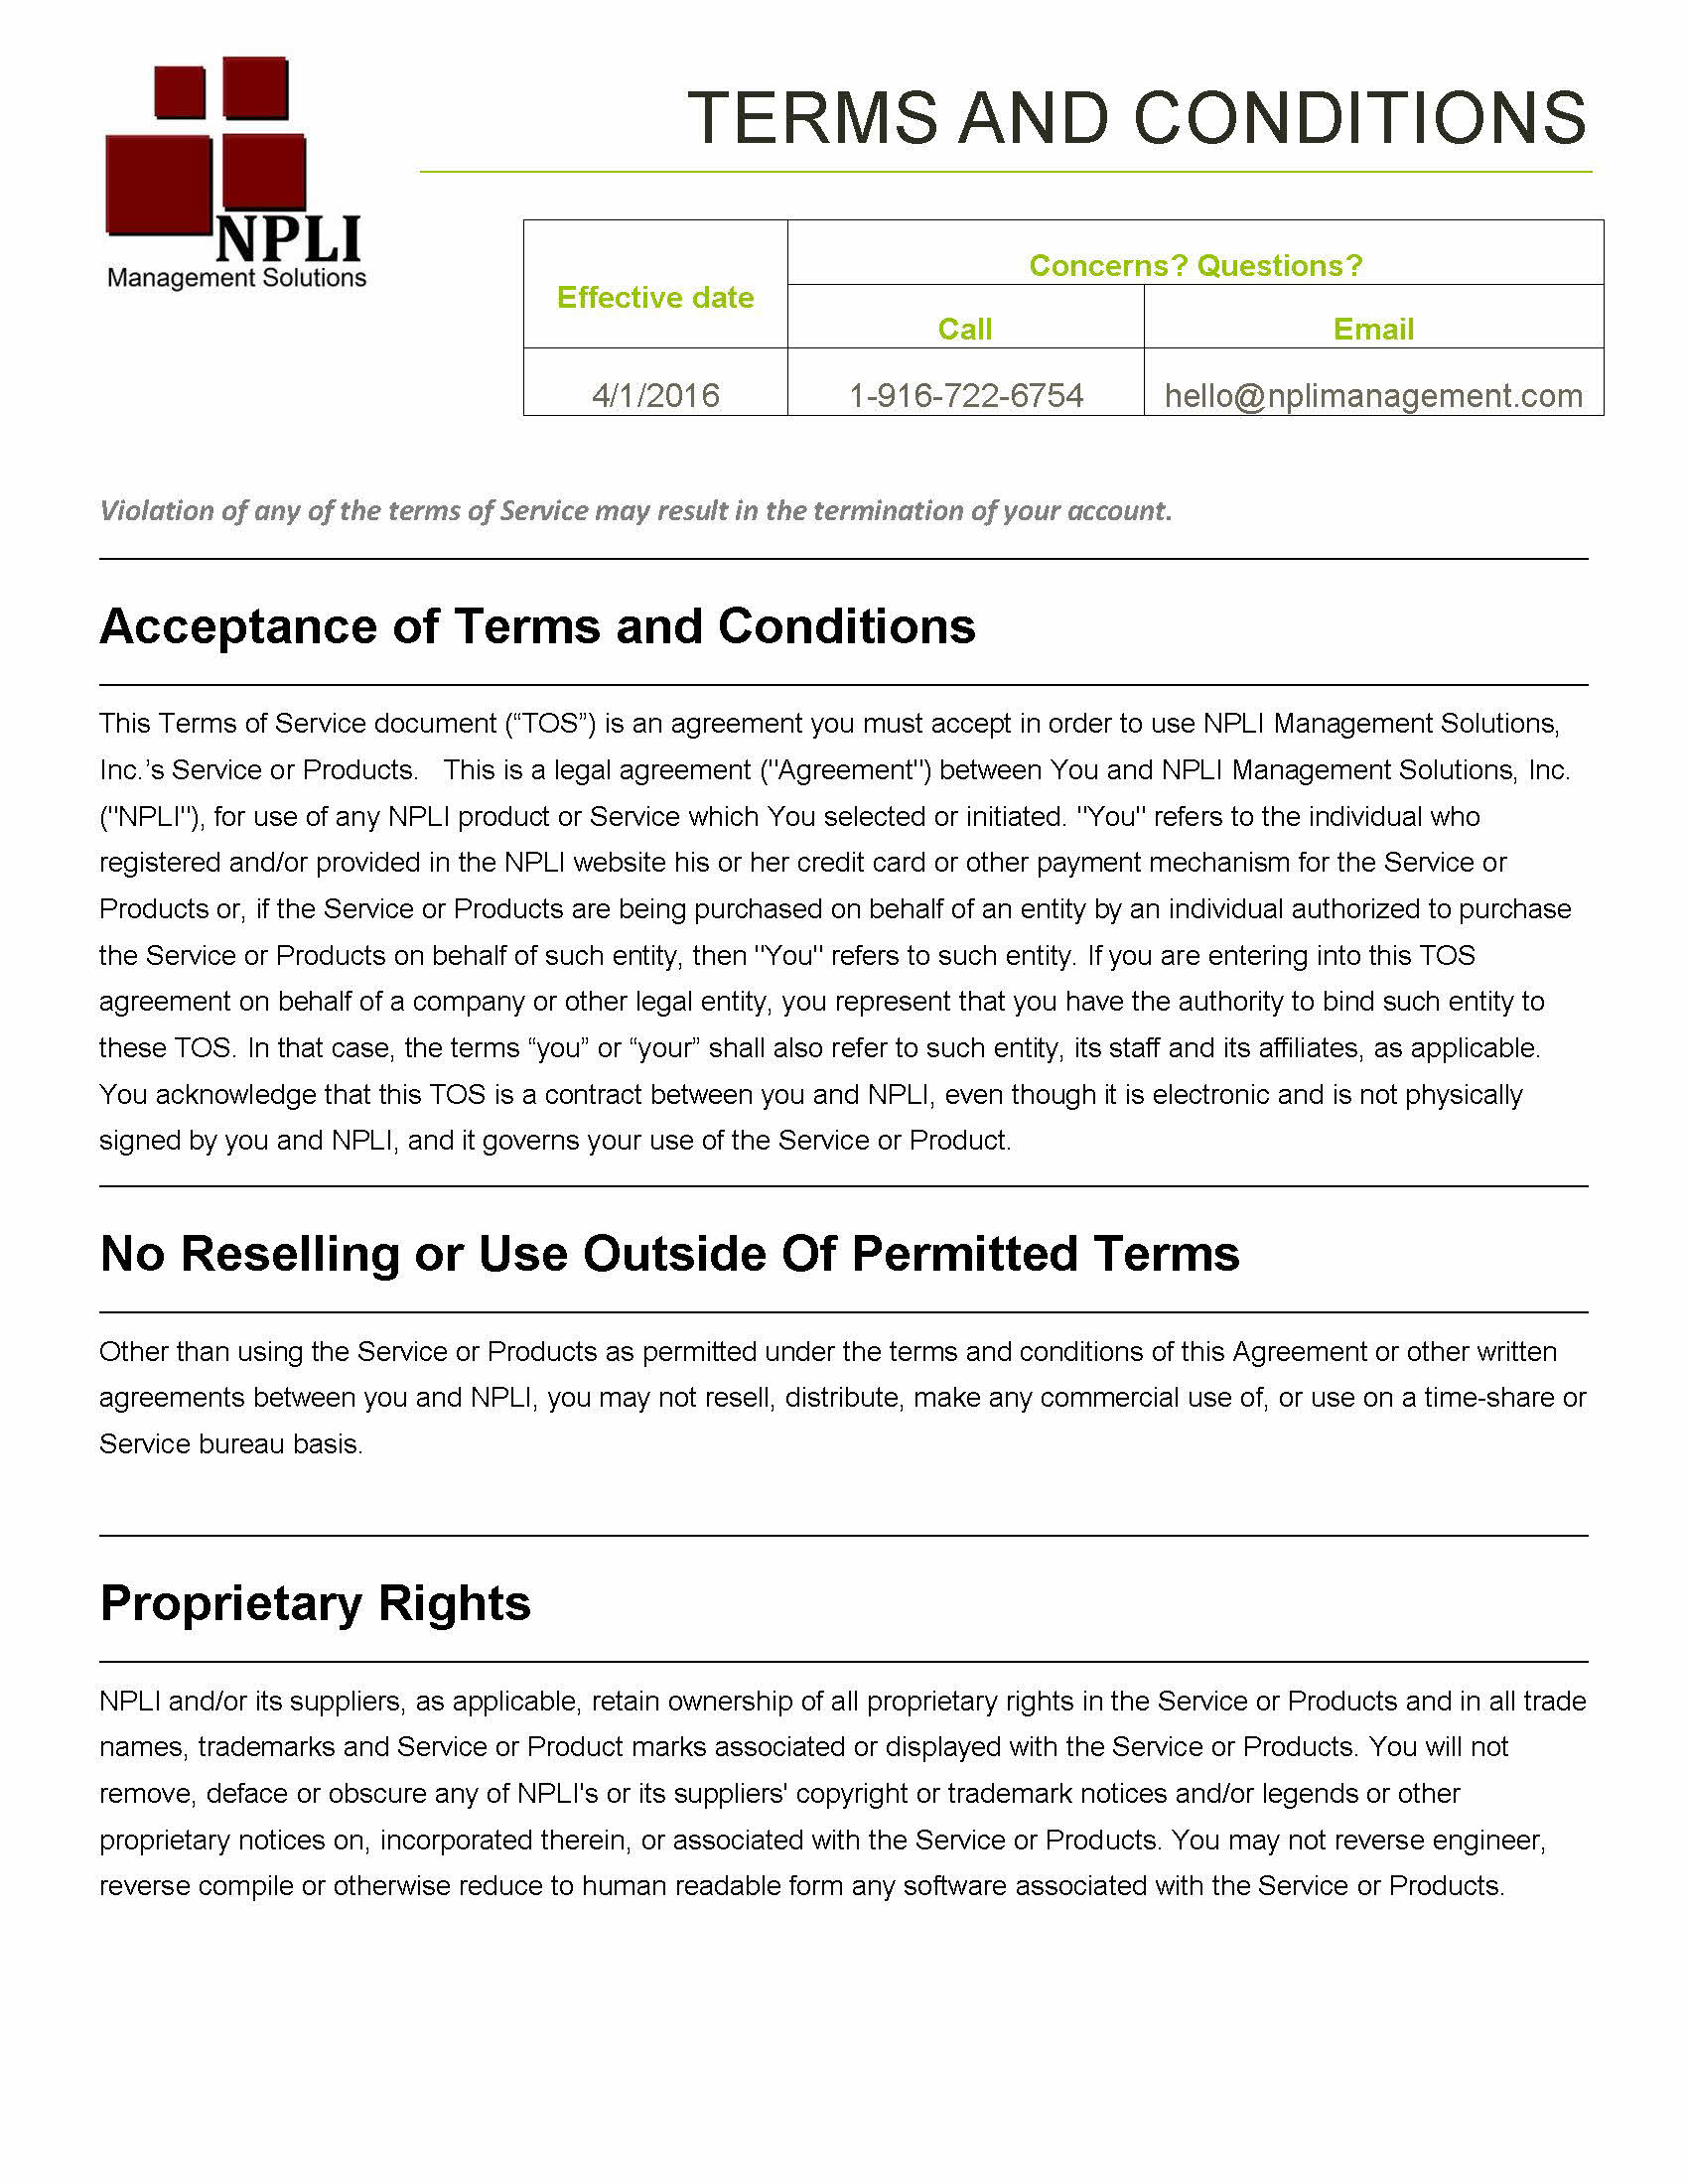 NPLI Management Solutions, Inc's Terms and Conditions